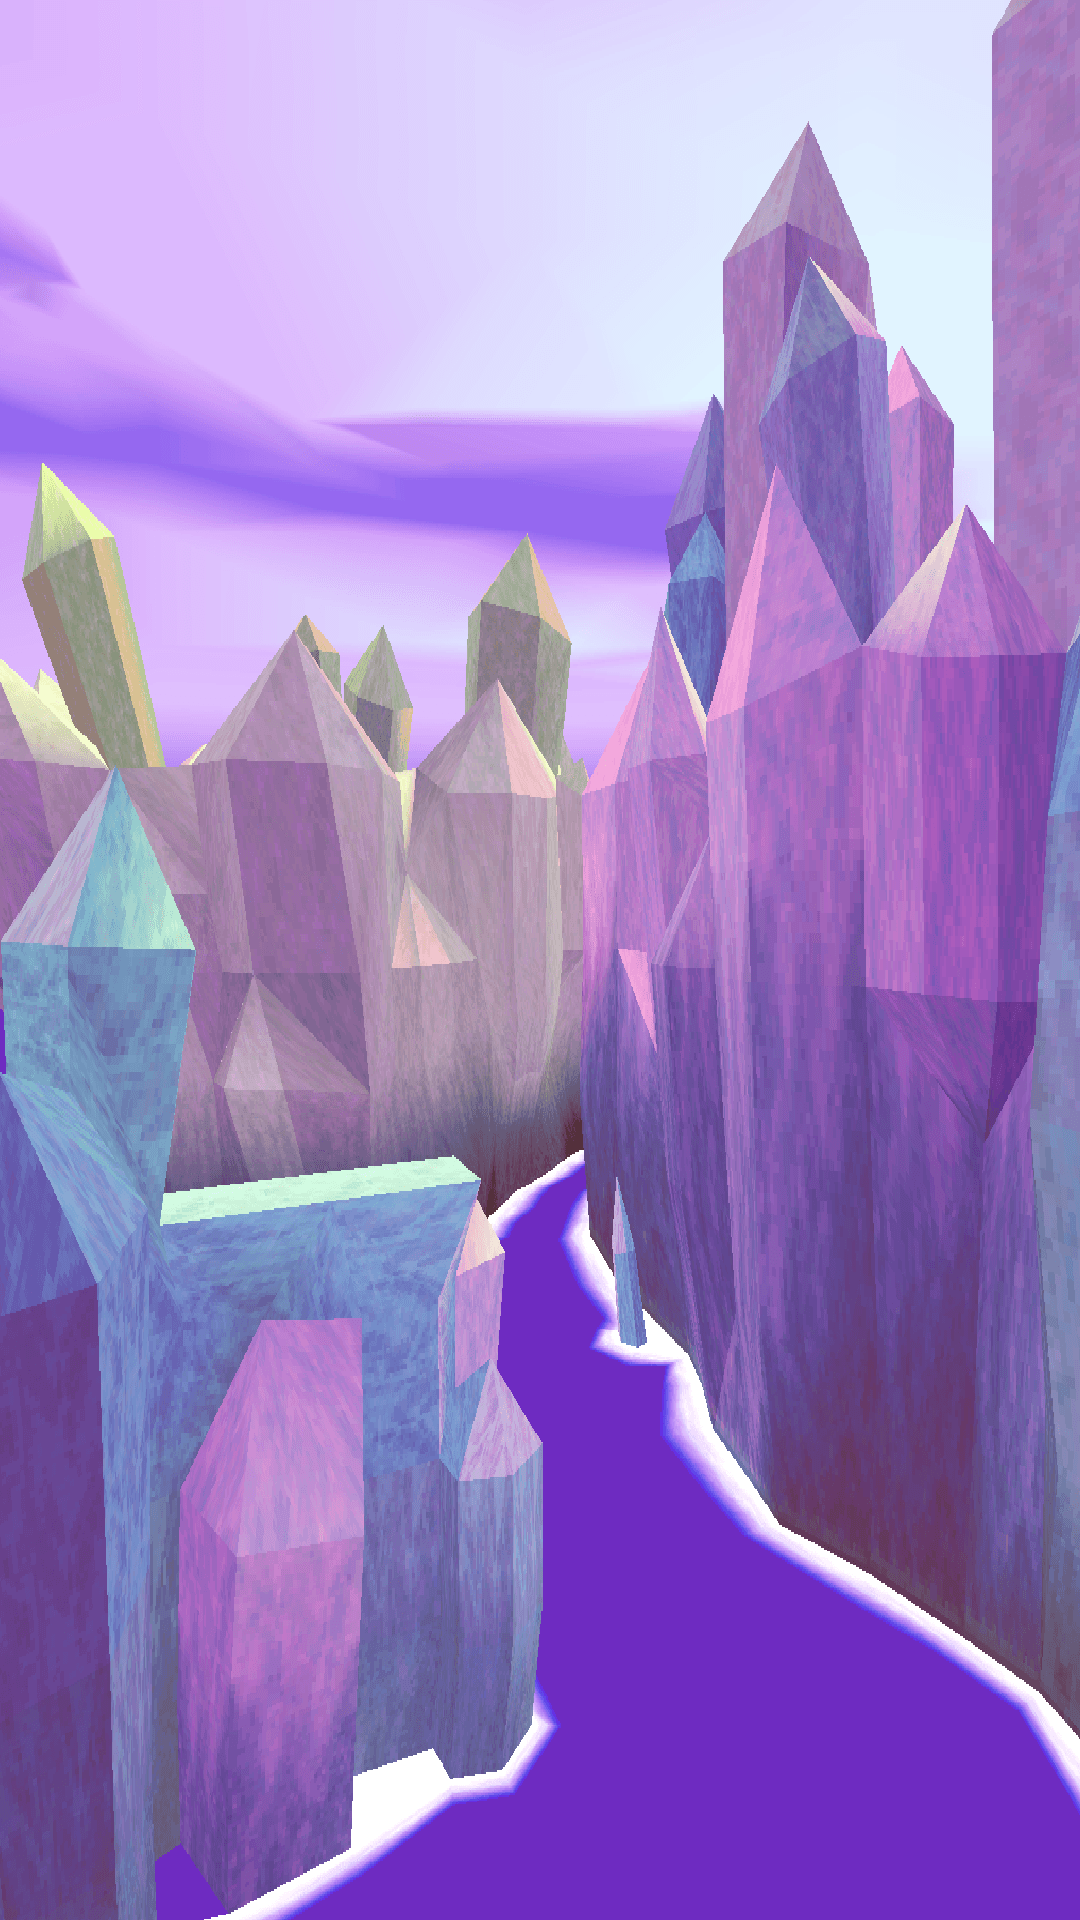 1080x1920 Pin by Annesthesia on Video Game Scenery | Pinterest | Spyro the ...